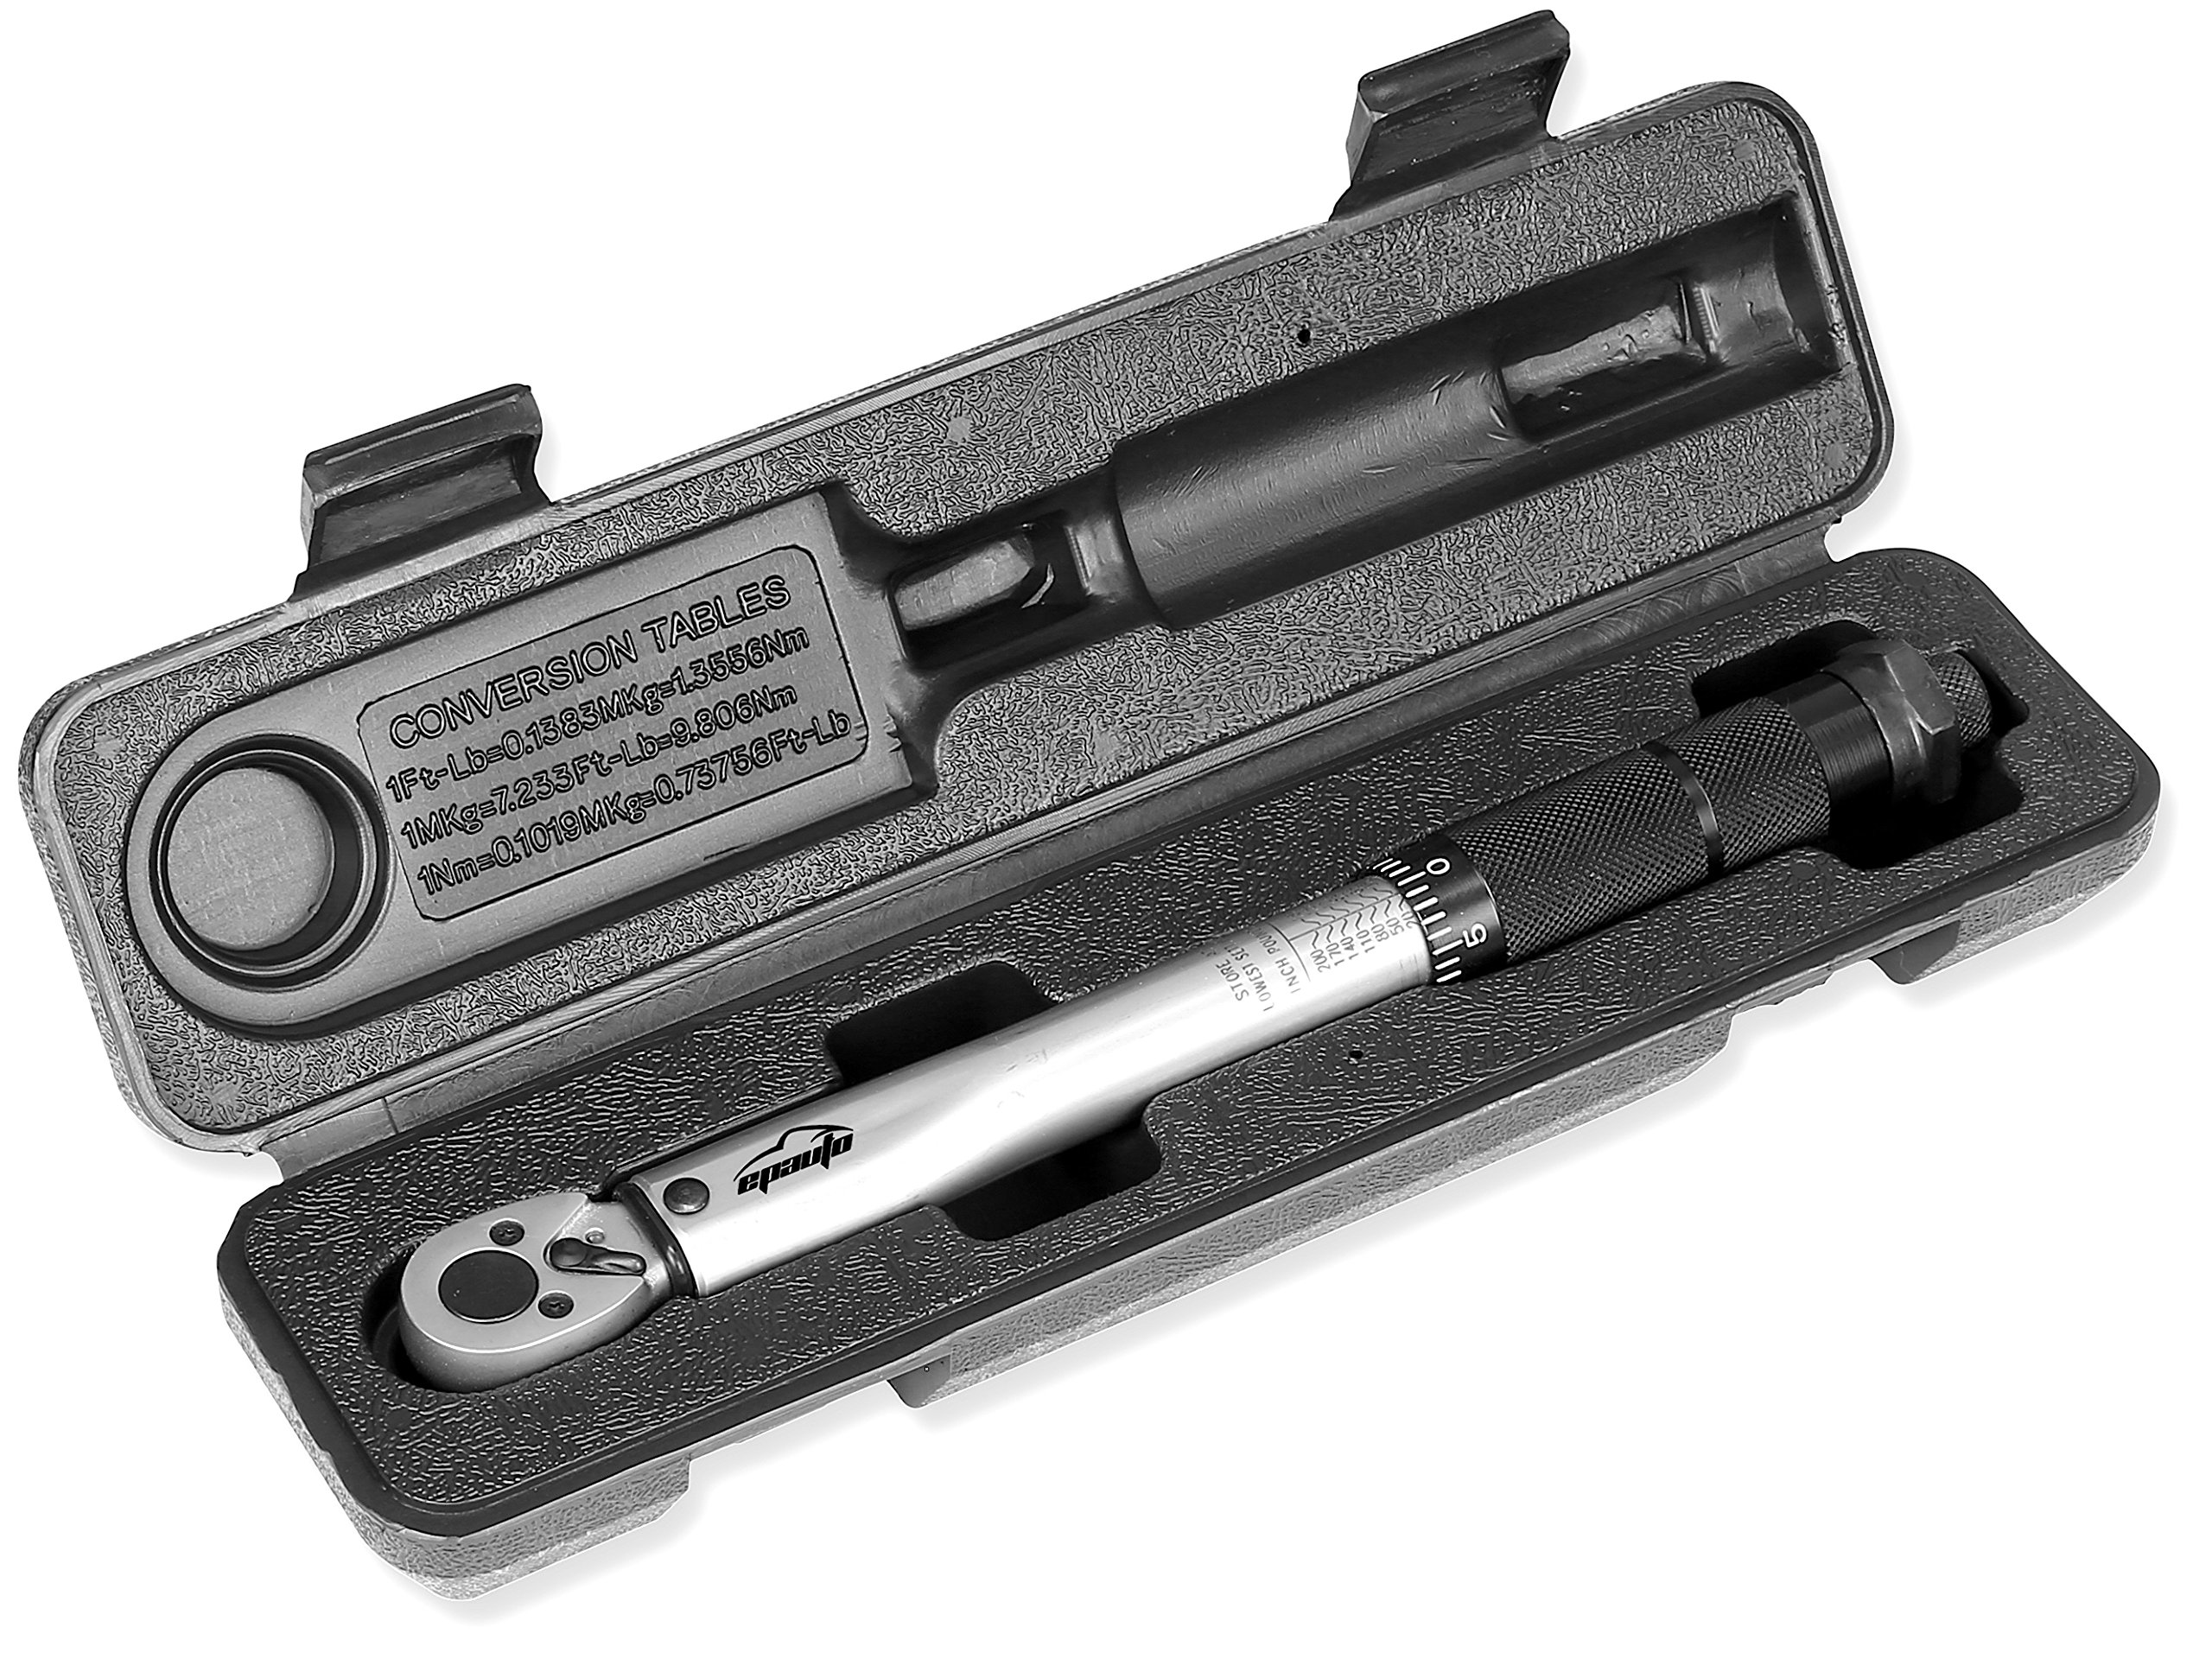 EPAuto 1/4-Inch Drive Click Torque Wrench (20-200 in.-lb. / 2.26~22.6 Nm) by EPAuto (Image #4)